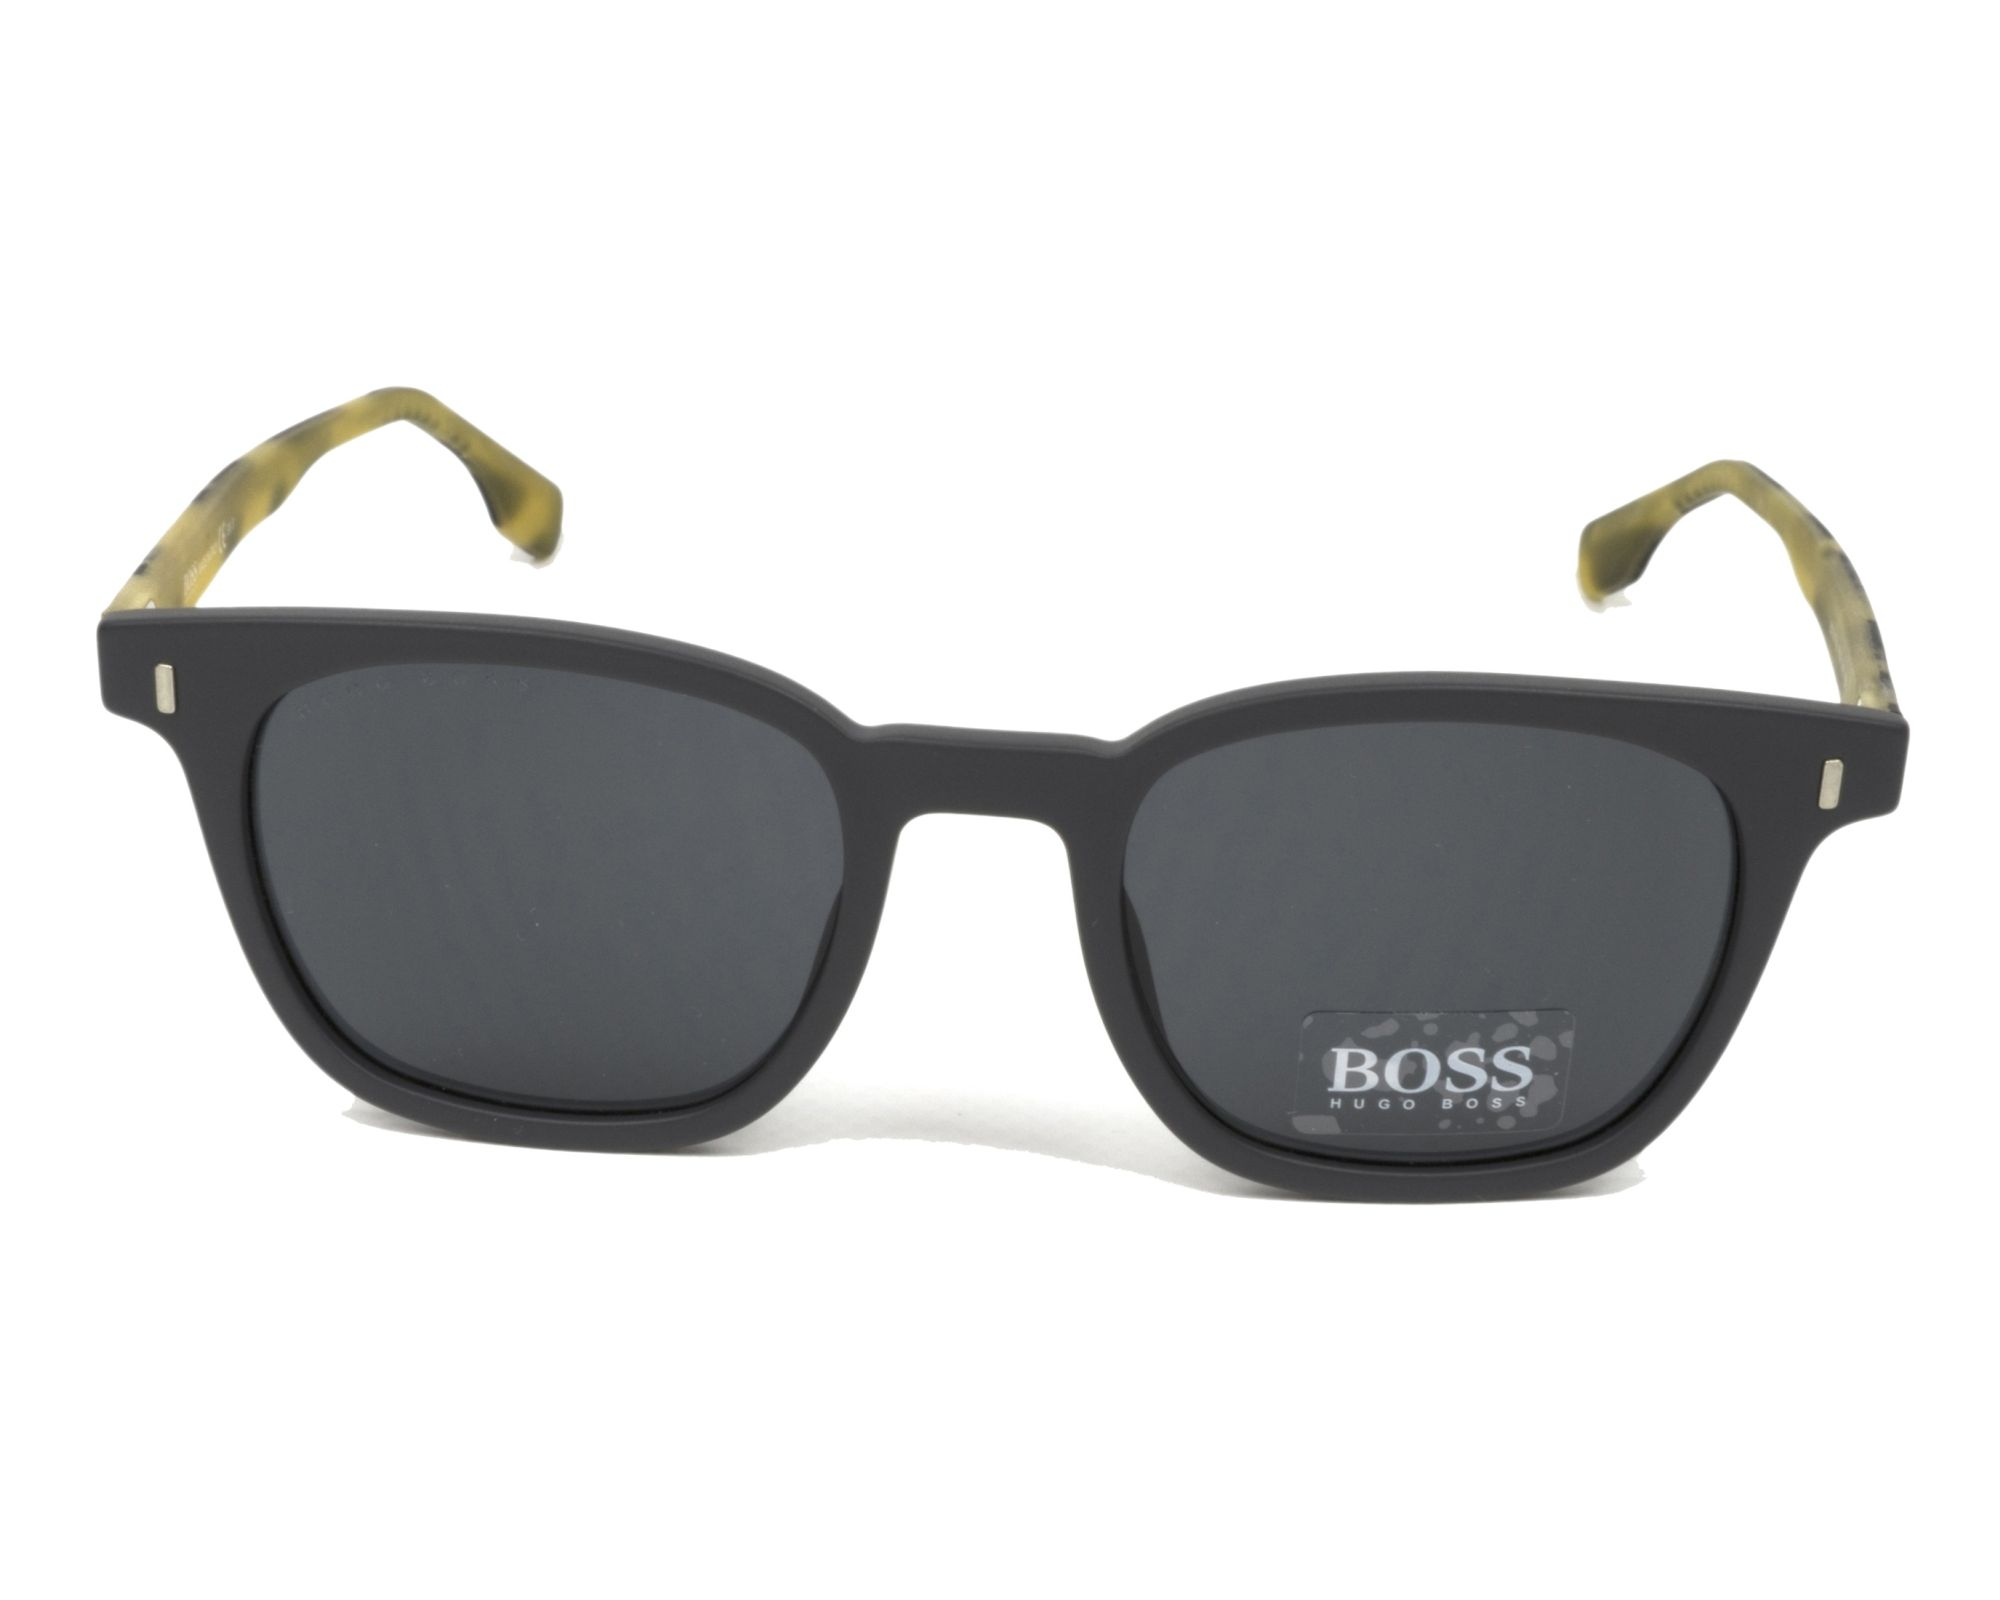 Boss 0970/s Fre/ir 50 Mm/21 Mm bvtUhgI4In